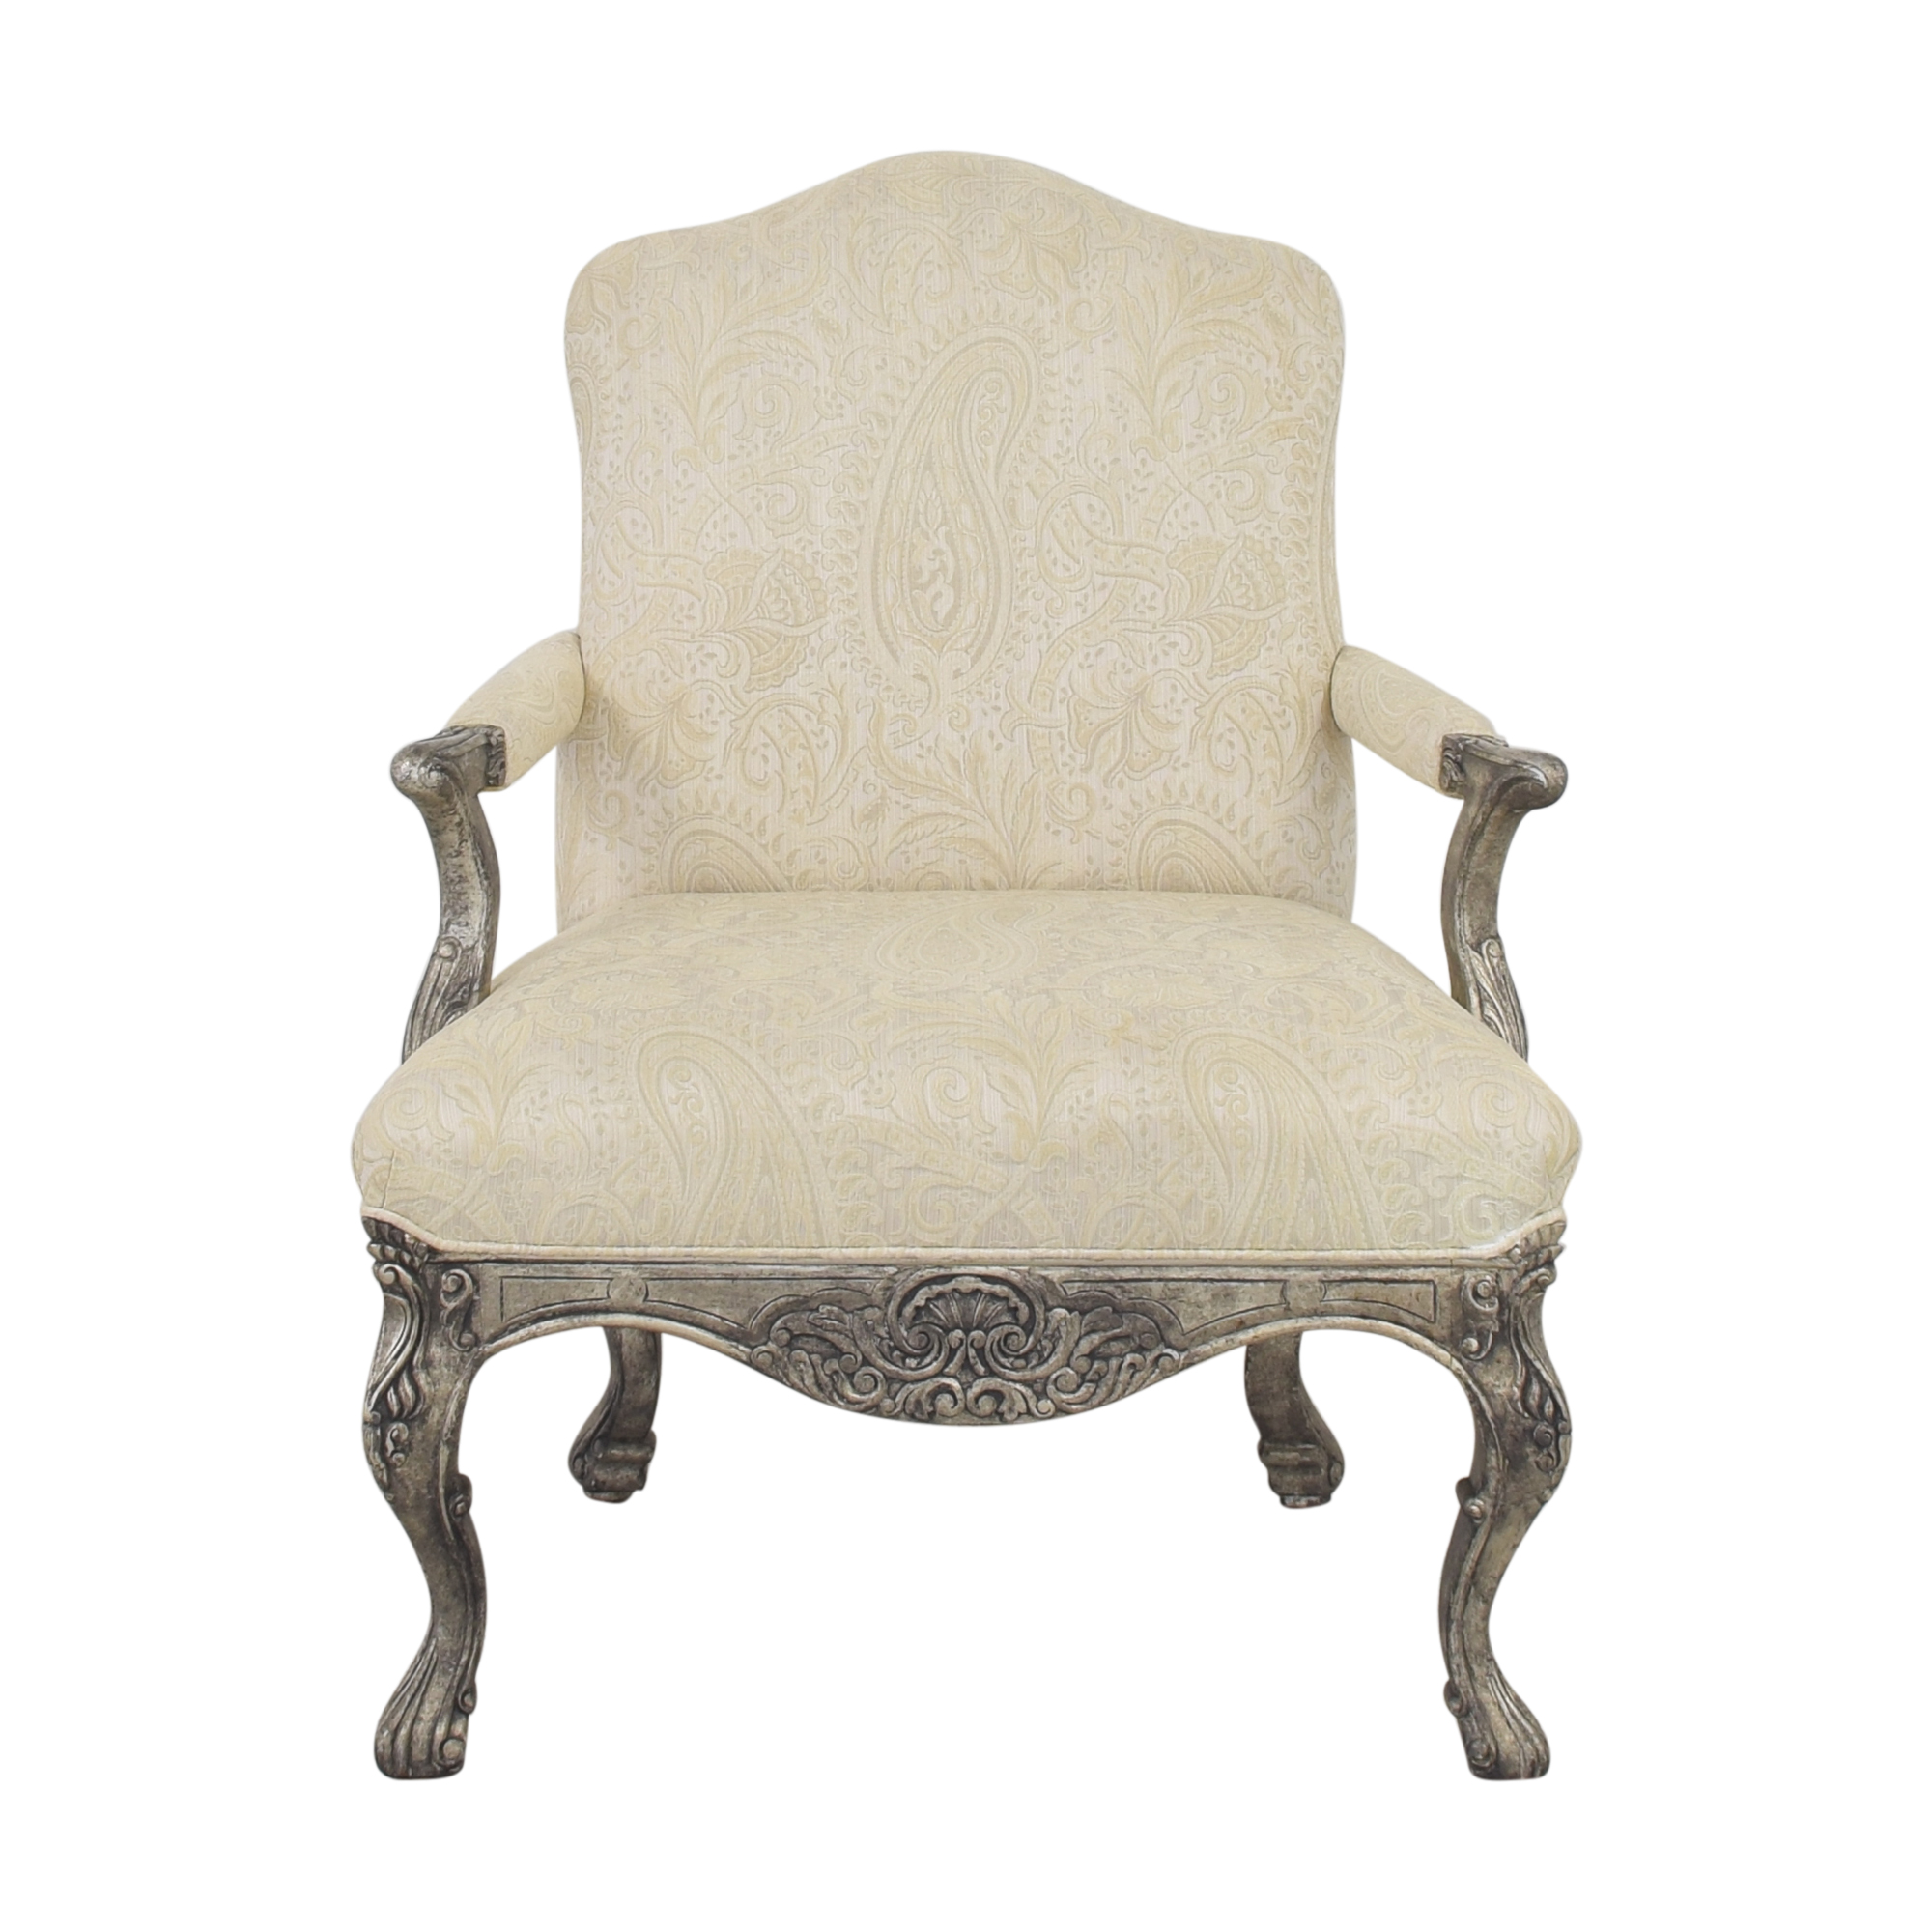 Lillian August Lillian August Paisley Arm Chair used